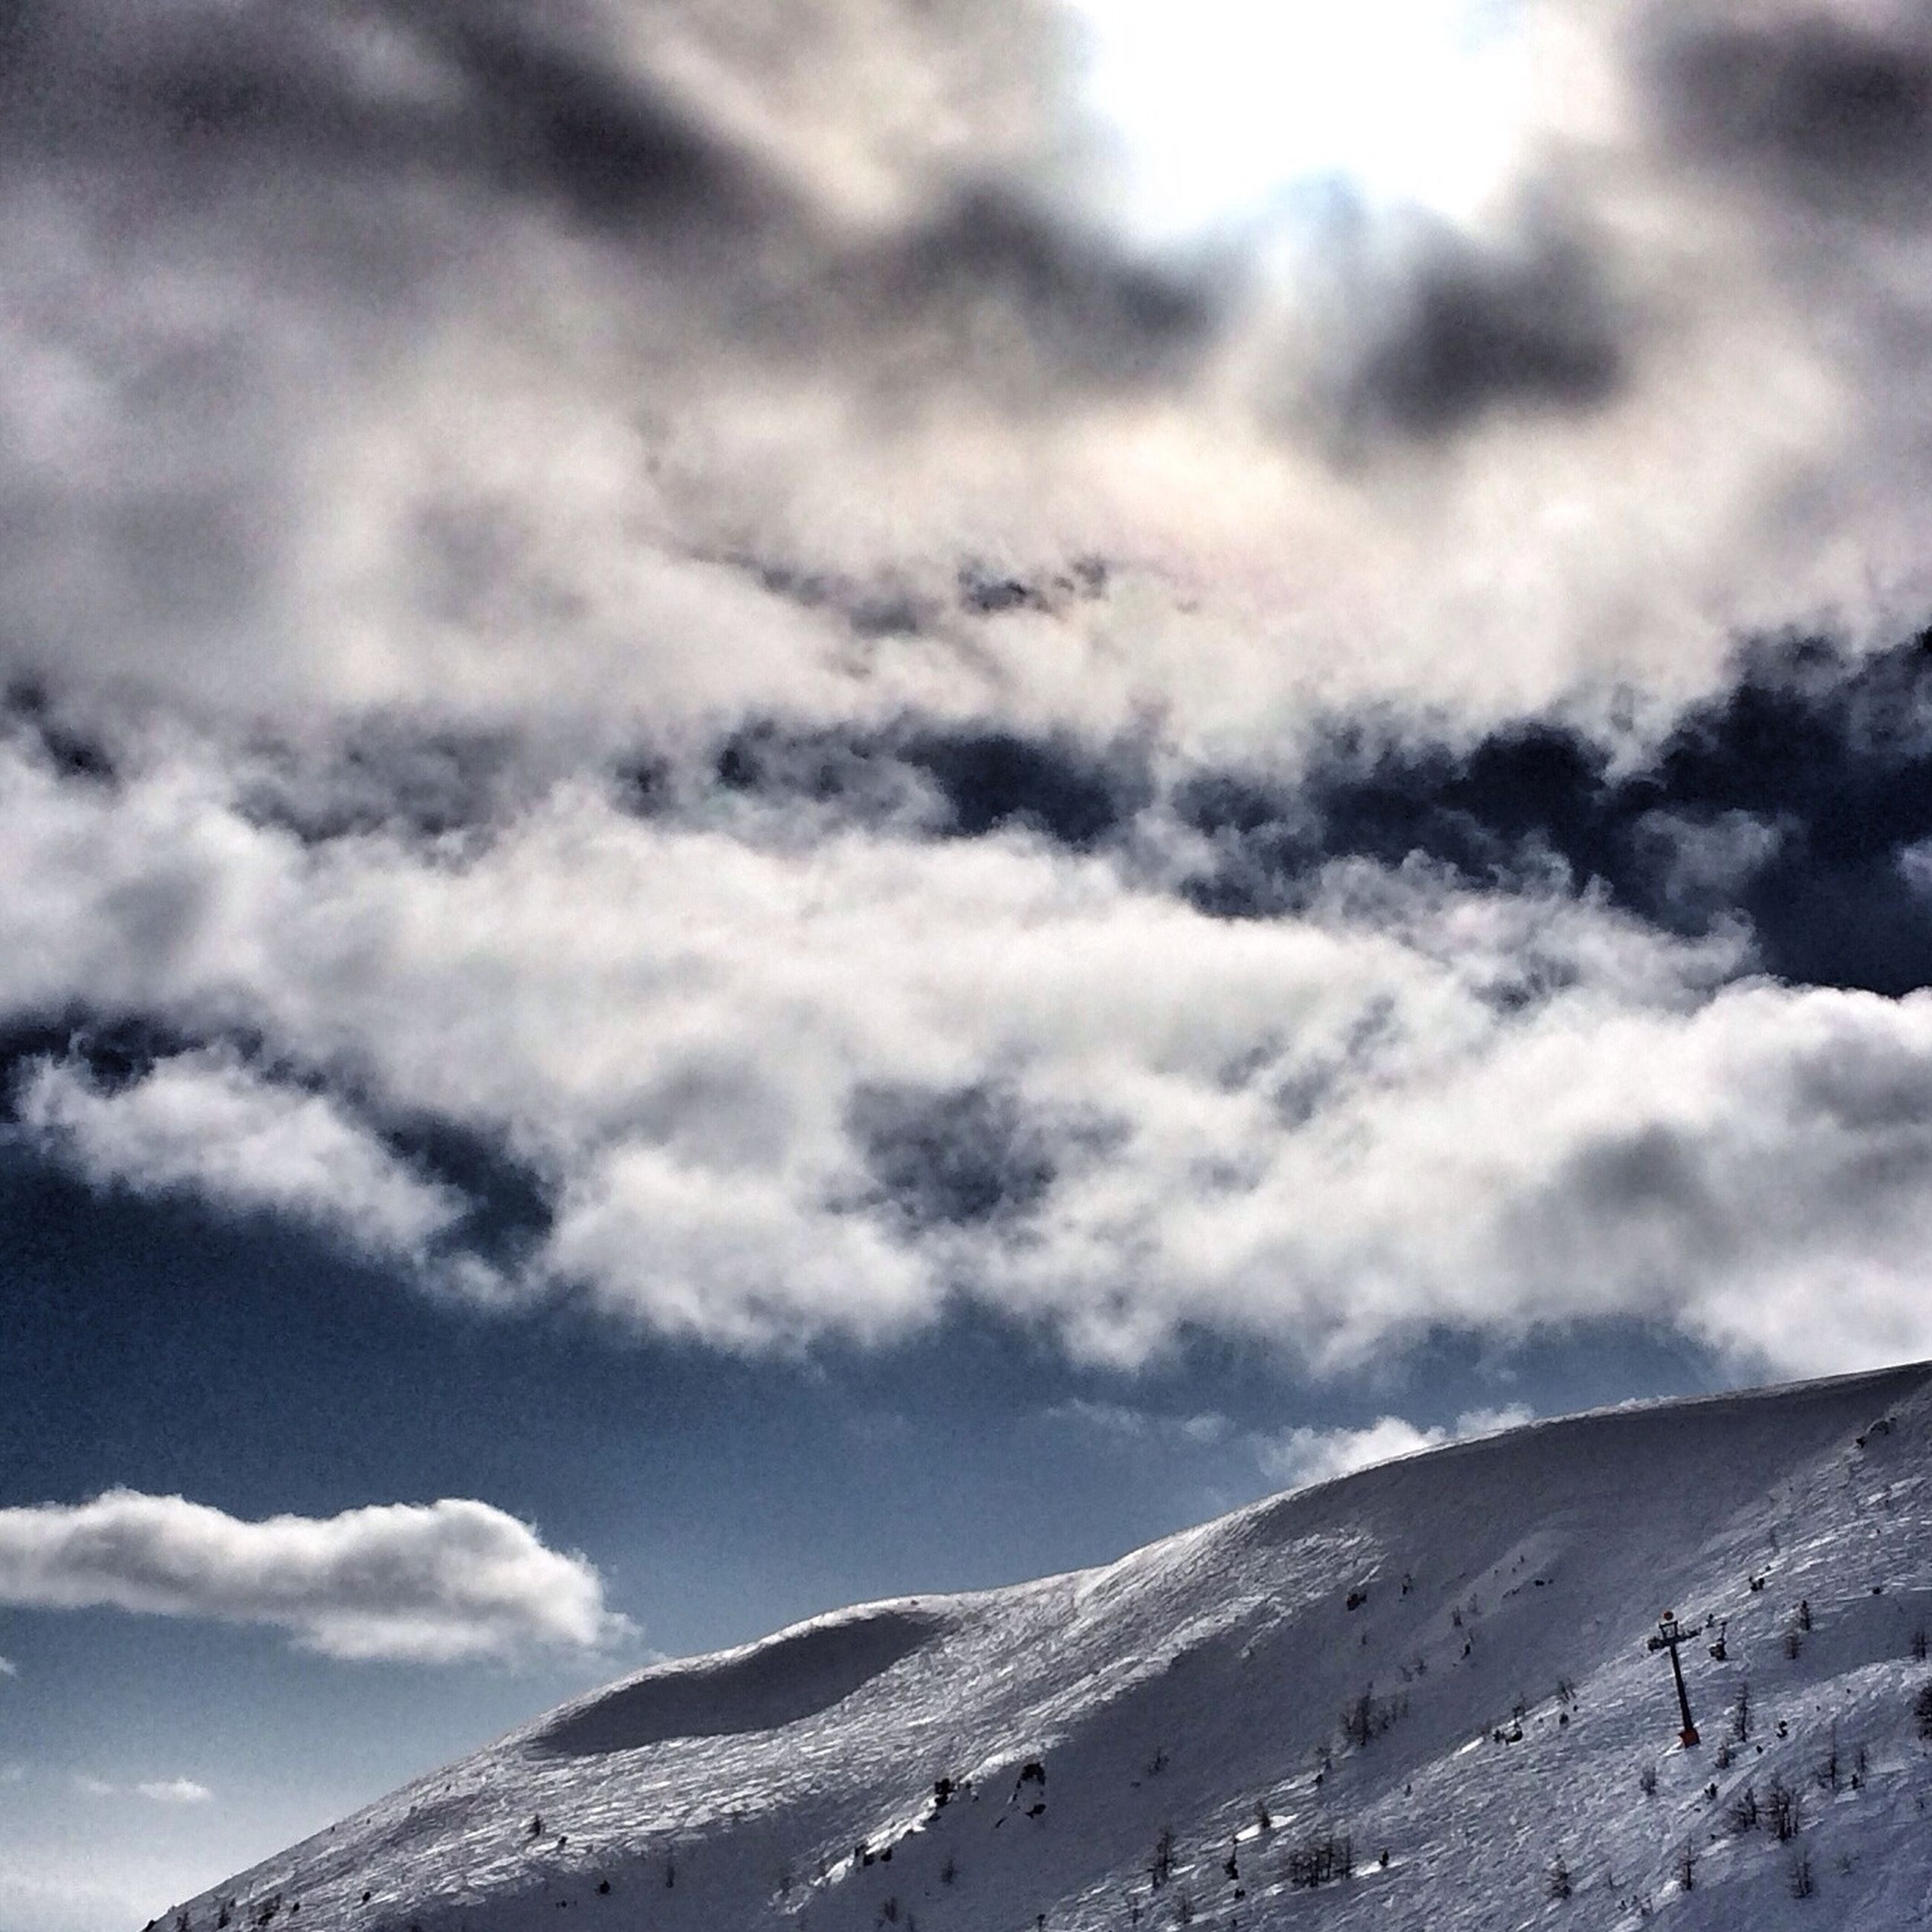 mountain, sky, tranquil scene, scenics, cloud - sky, tranquility, mountain range, beauty in nature, cloudy, landscape, nature, cloud, weather, snow, white color, winter, idyllic, day, non-urban scene, outdoors